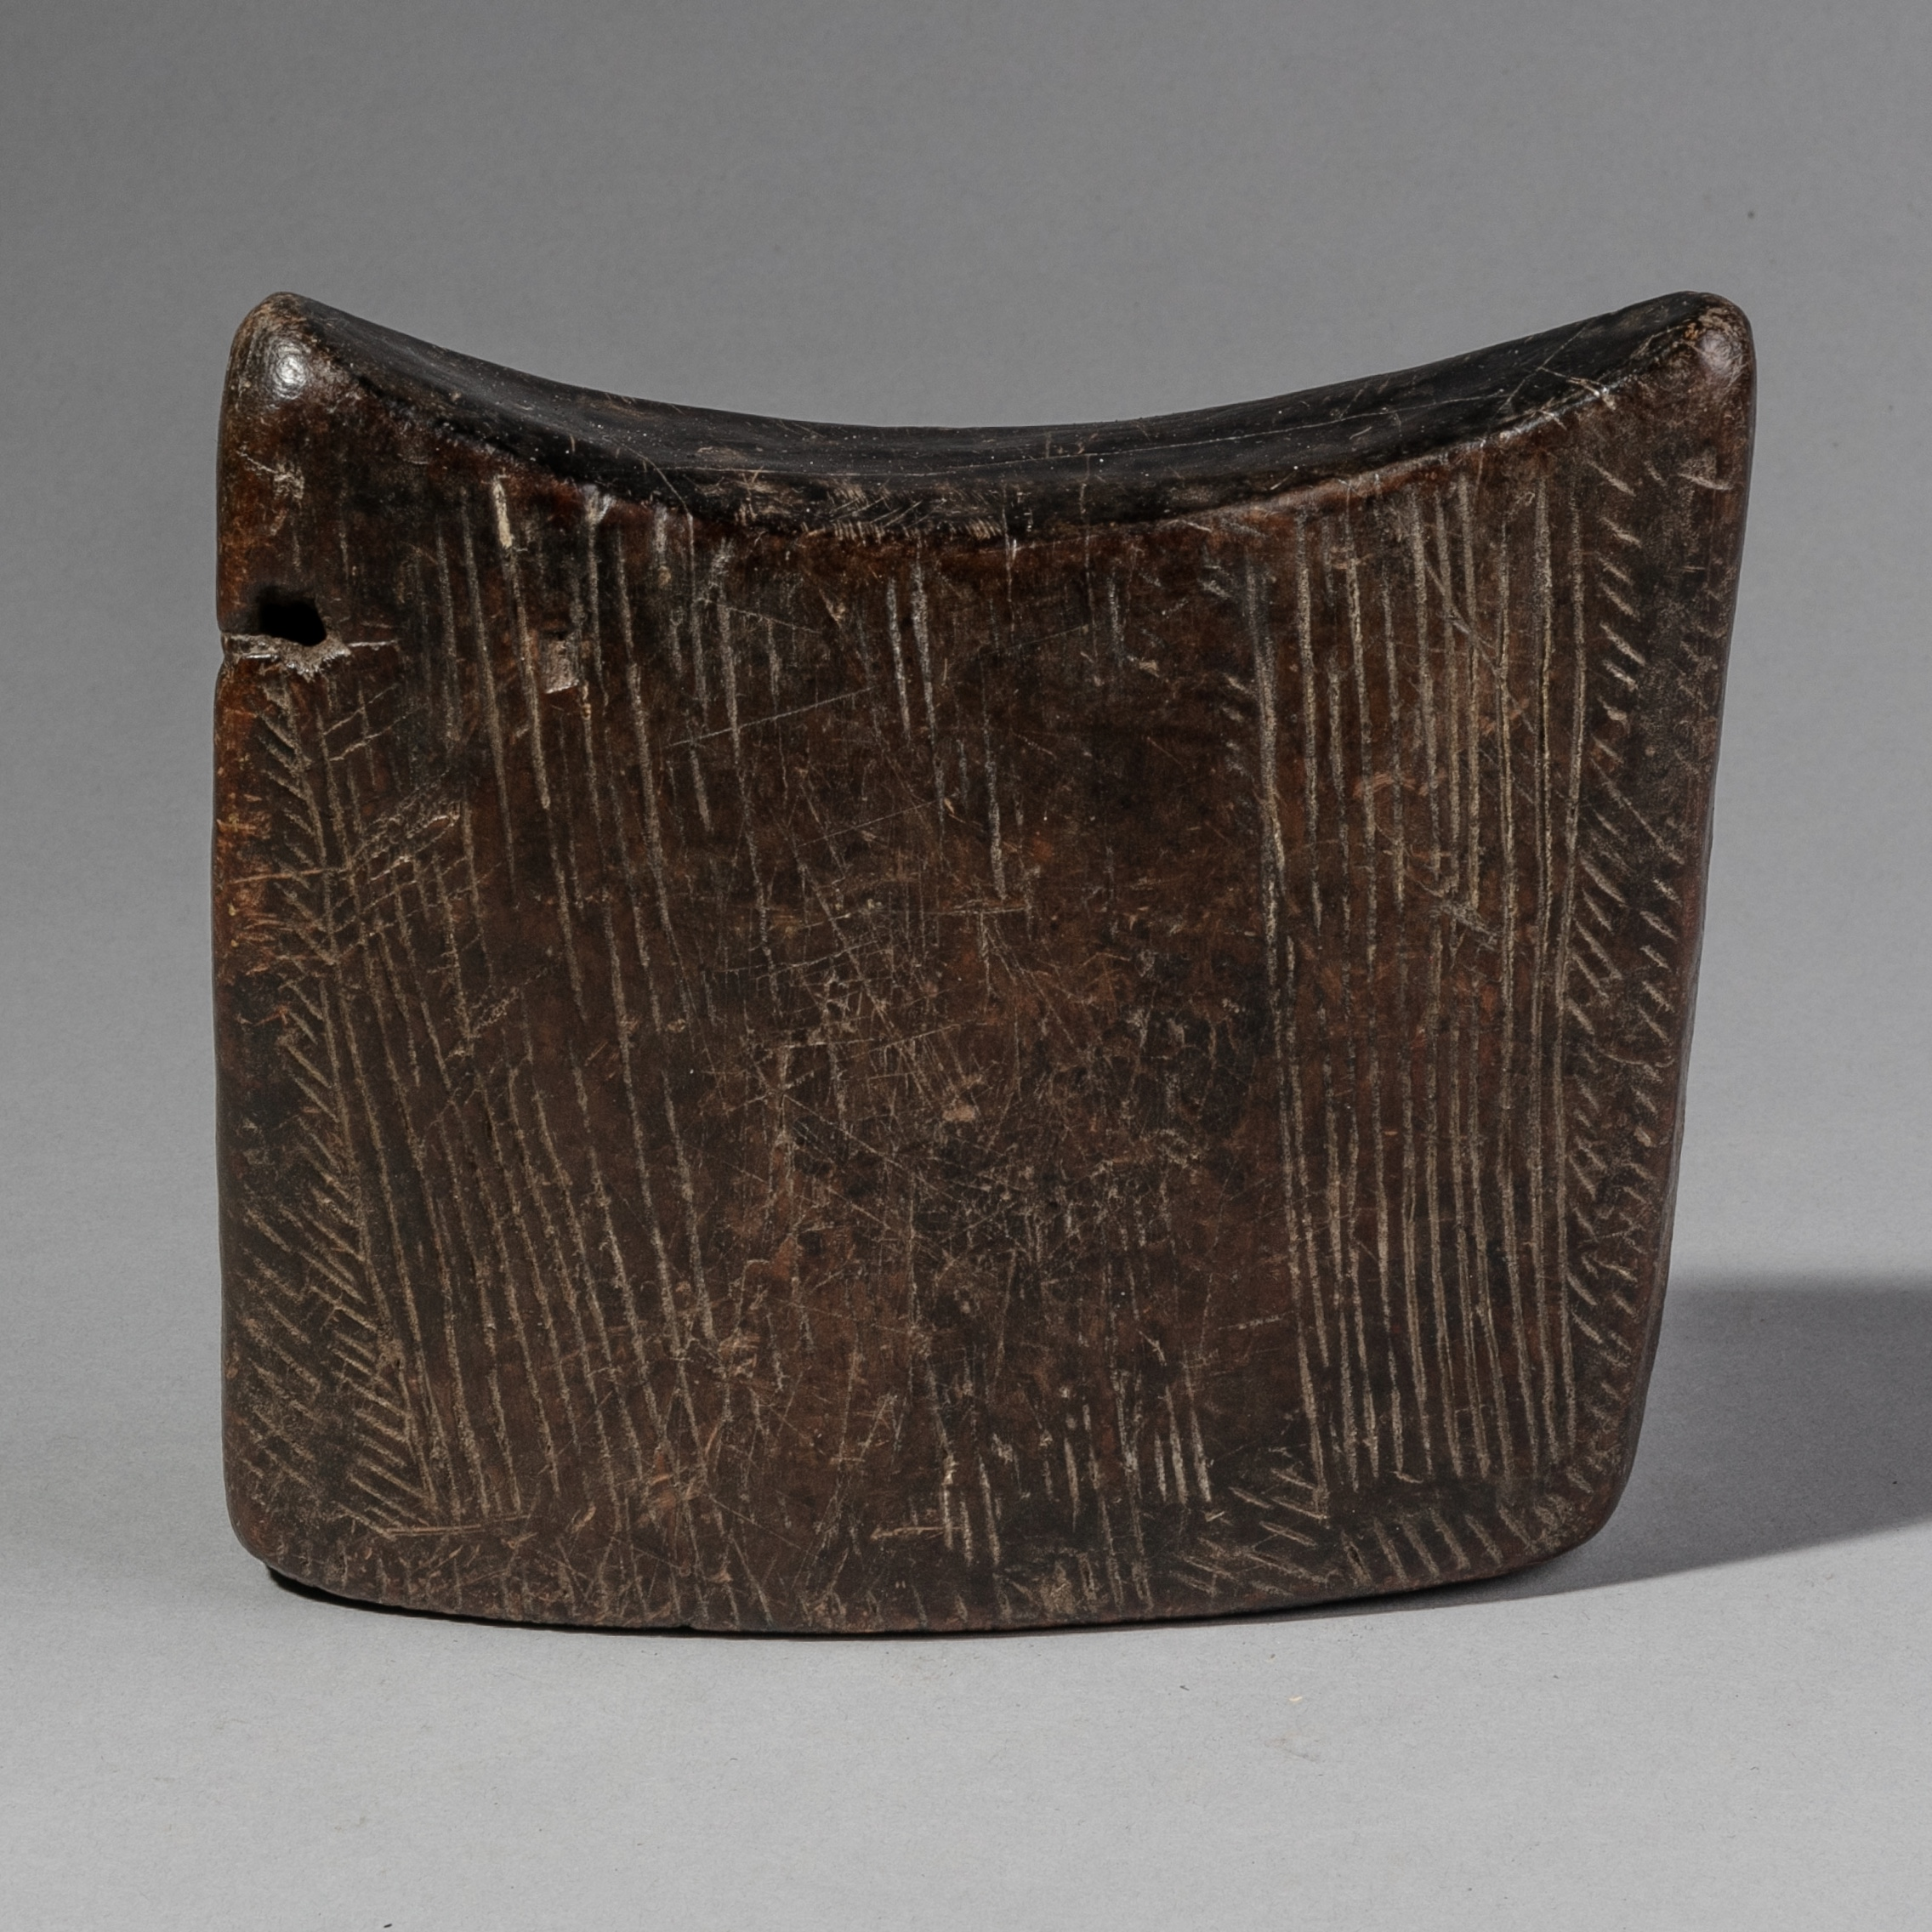 AN ENGRAVED, TALISMANIC HEADREST FROM GURAGE TRIBE ETHIOPIA ( No 1112 )